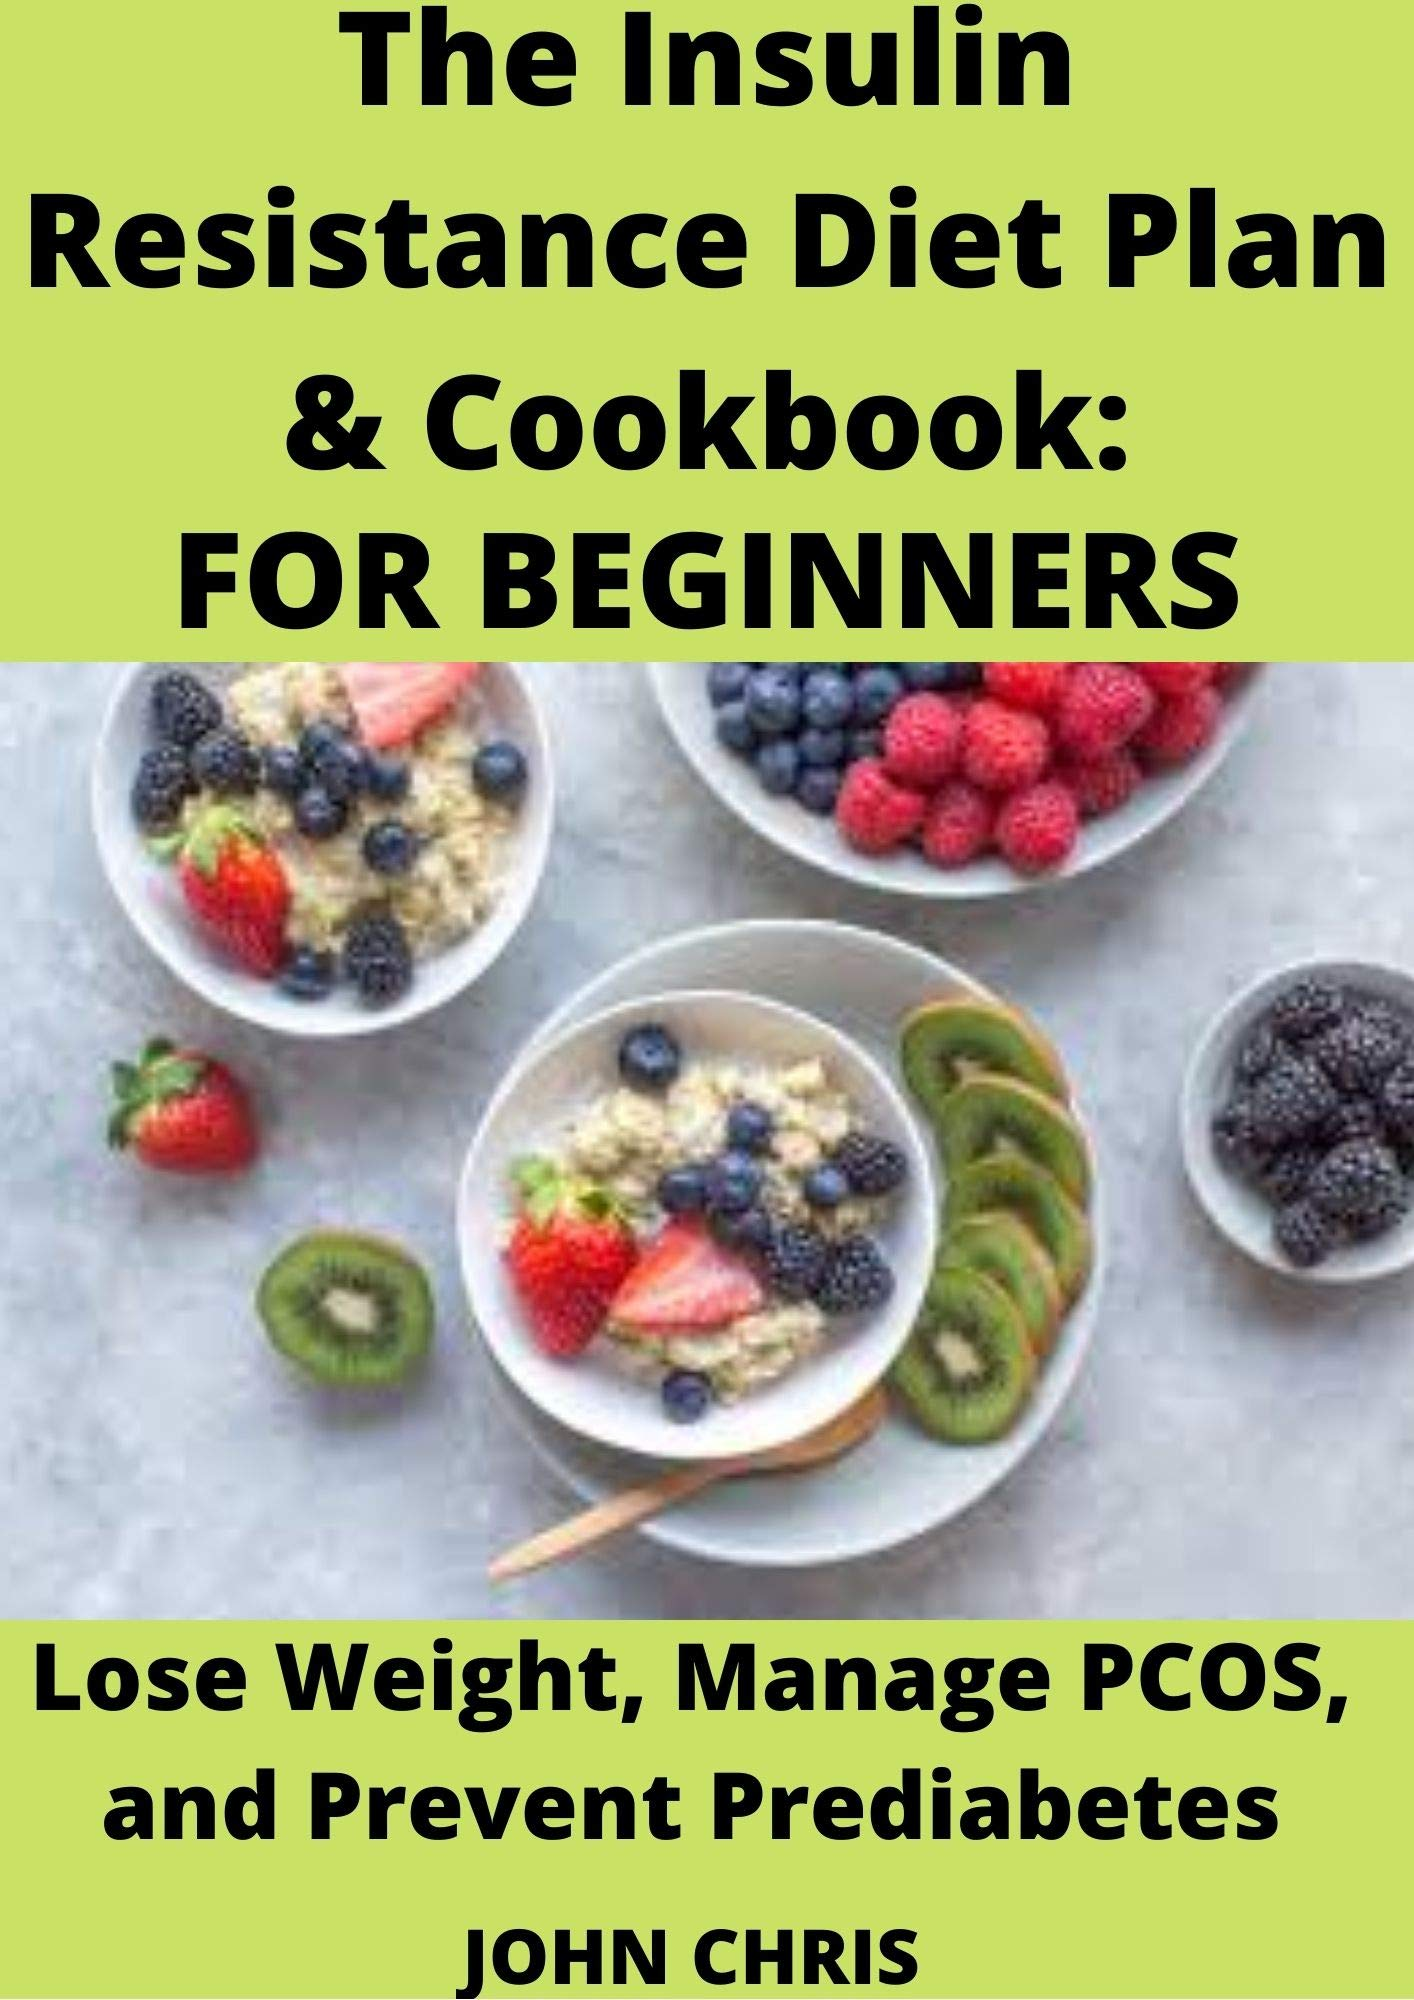 INSULIN RESISTANCE DIET: THE PERFECT INSULIN RESISTANCE COOKBOOK TO LOSE WEIGHT MANAGE PCOS, AND PREVENT PREDIABETES FOR BEGINNERS